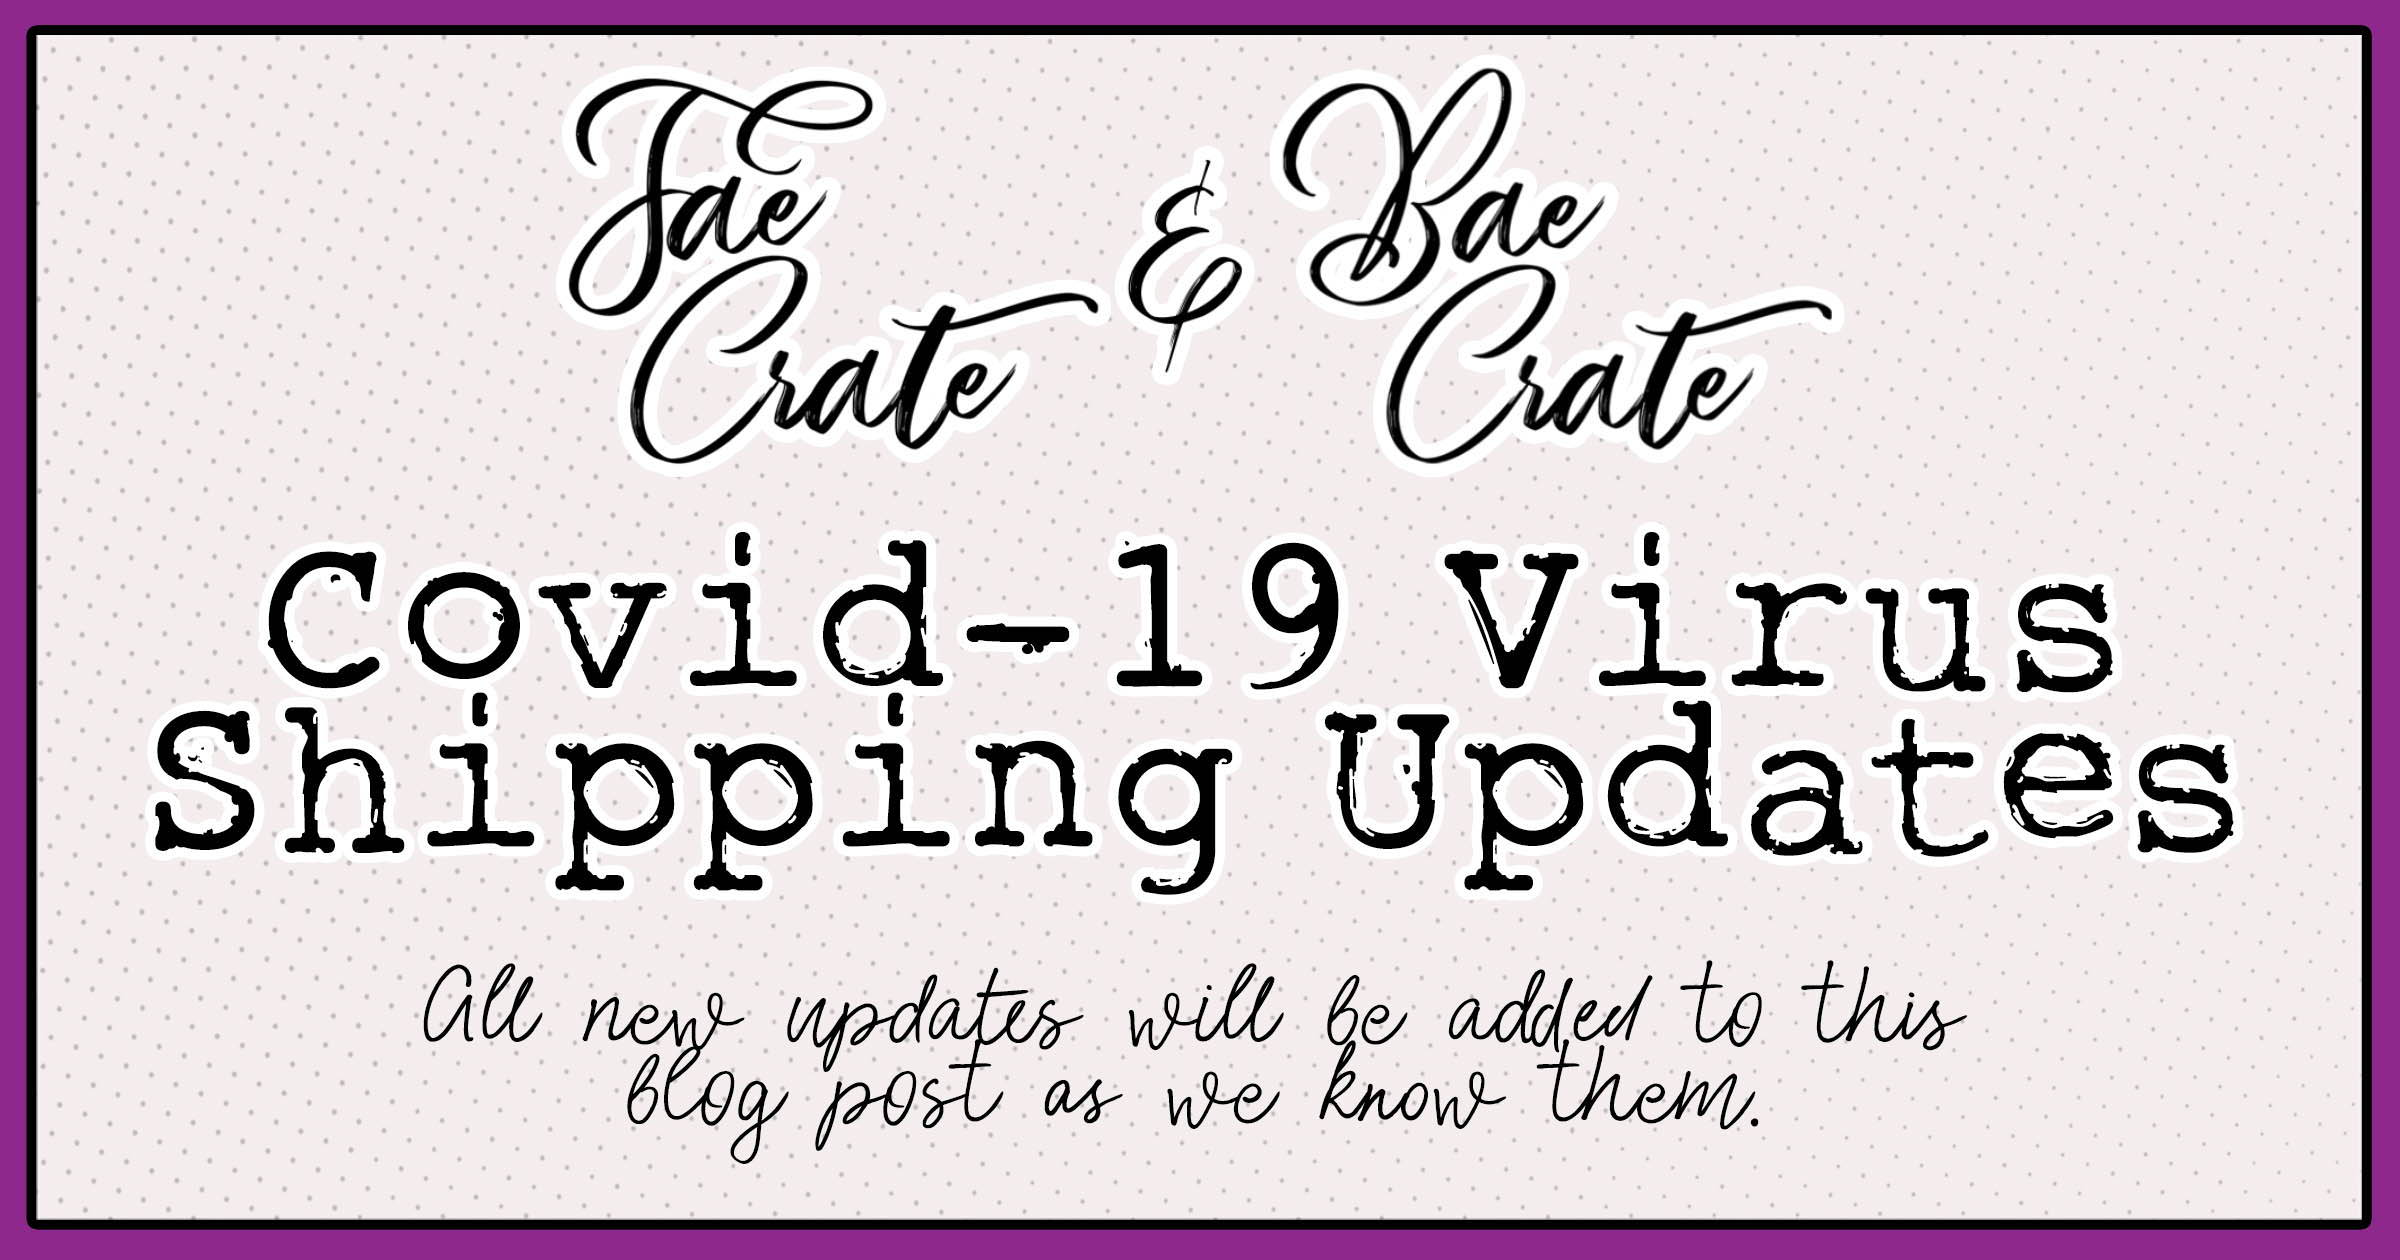 Fae Crate & Bae Crate Covid-19 Virus Shipping Updates. All new updates will be added to this blog post as we know them.